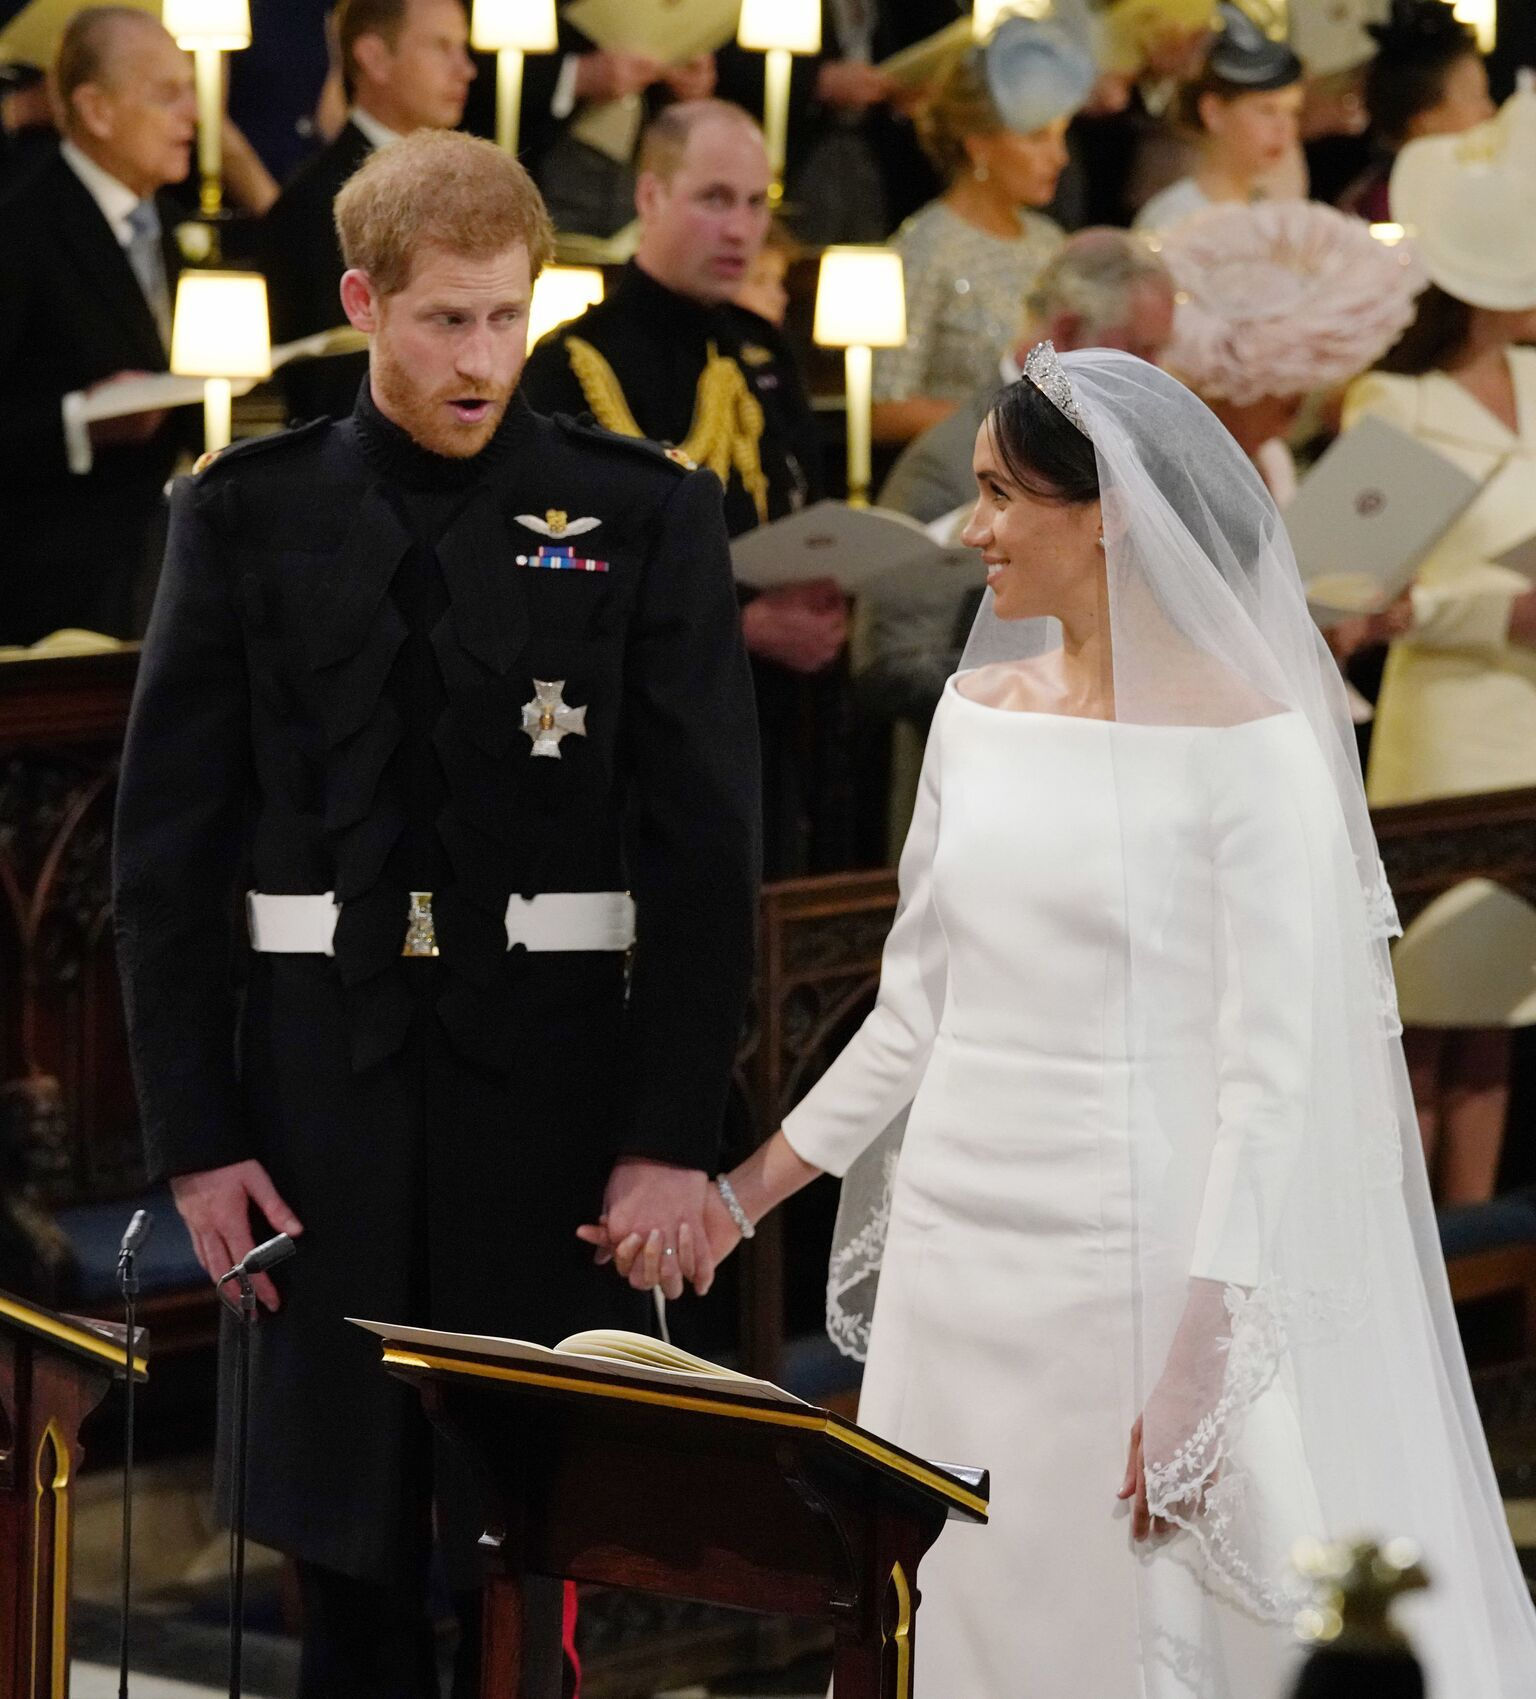 Prince Harry stands with his bride, Meghan Markle, during their wedding in St George's Chapel at Windsor Castle  | Getty Images